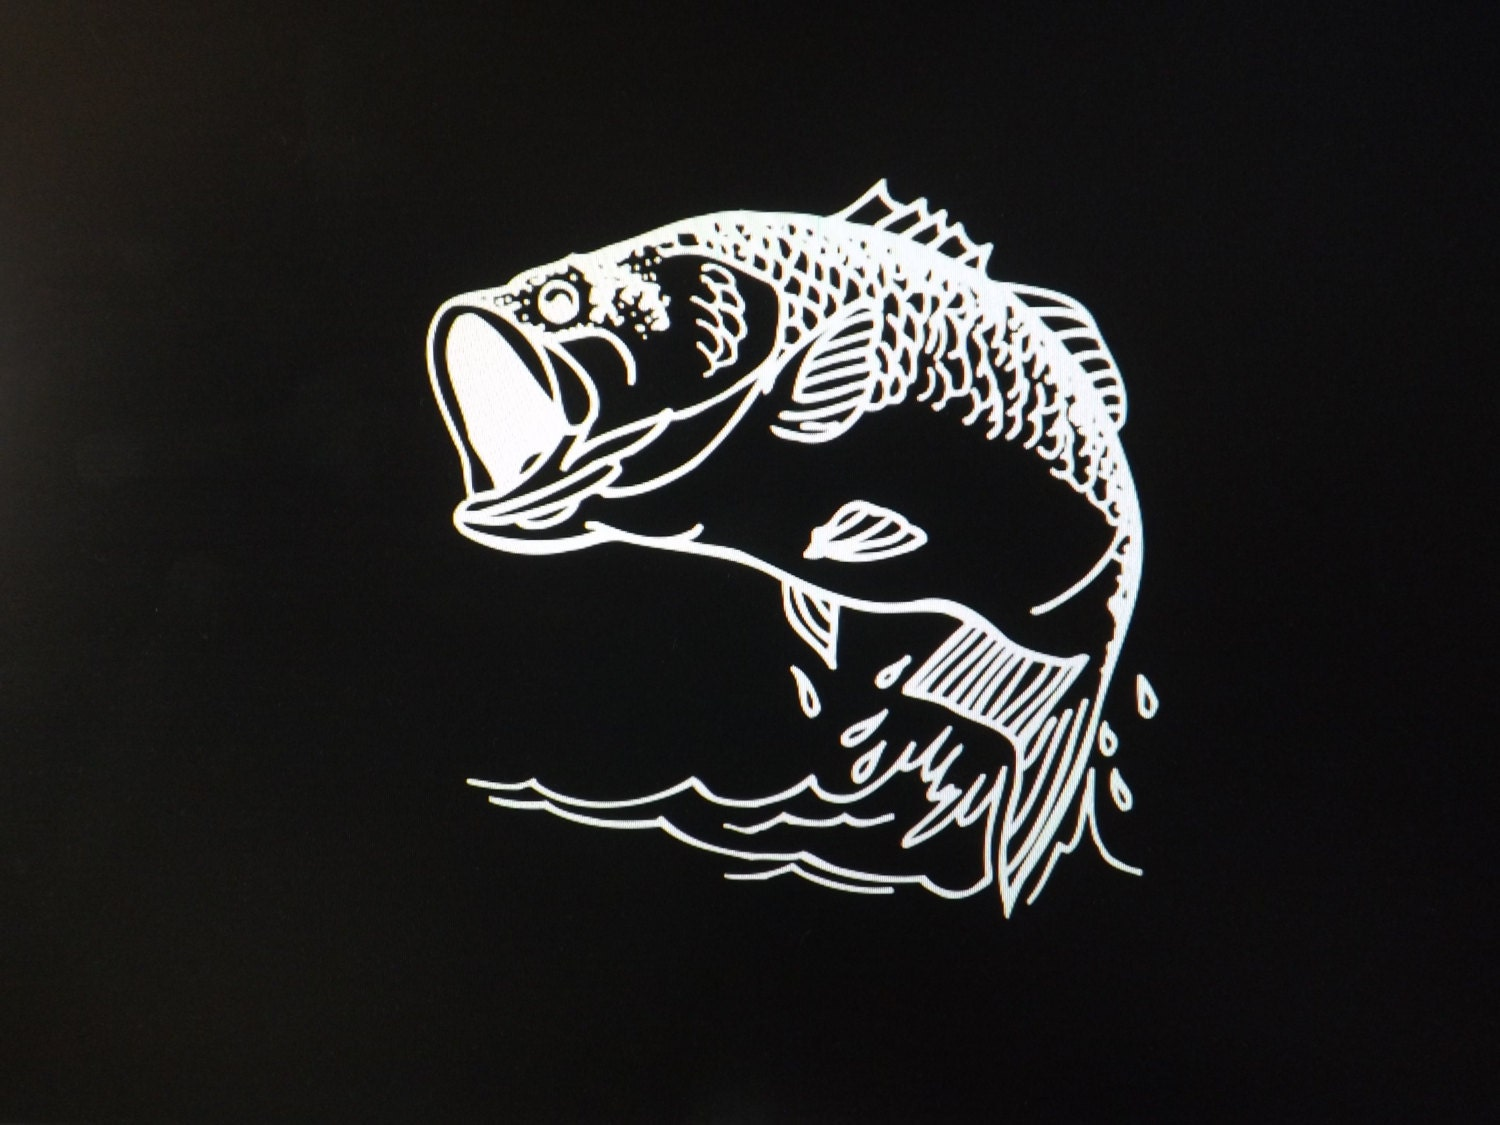 Bass fish vehicle walldecal sticker9 x 9avery for Bass fishing decals